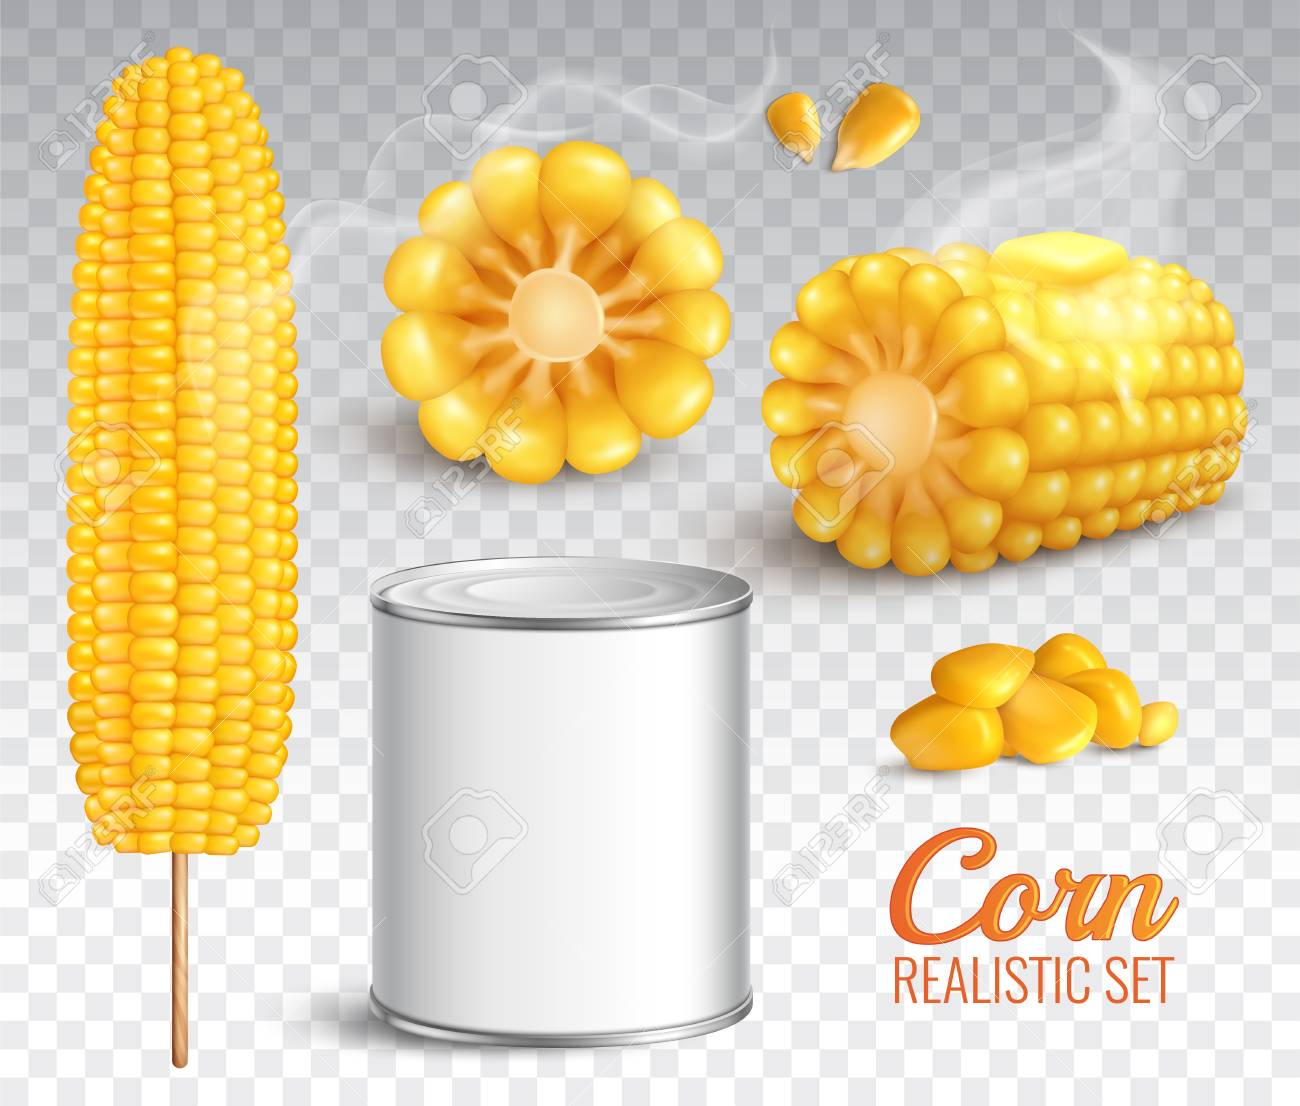 Realistic corn in cob, grains, baked buttered maize, canned product, set on transparent background isolated vector illustration - 103513293